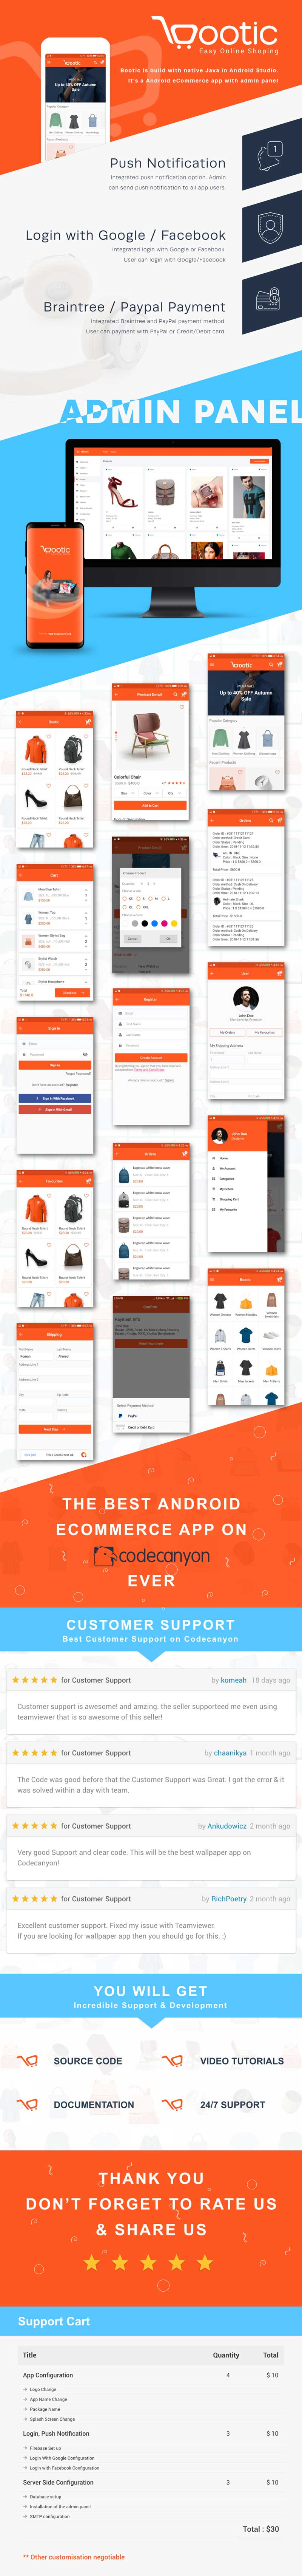 Bootic Full - An android eCommerce app with admin panel - 6